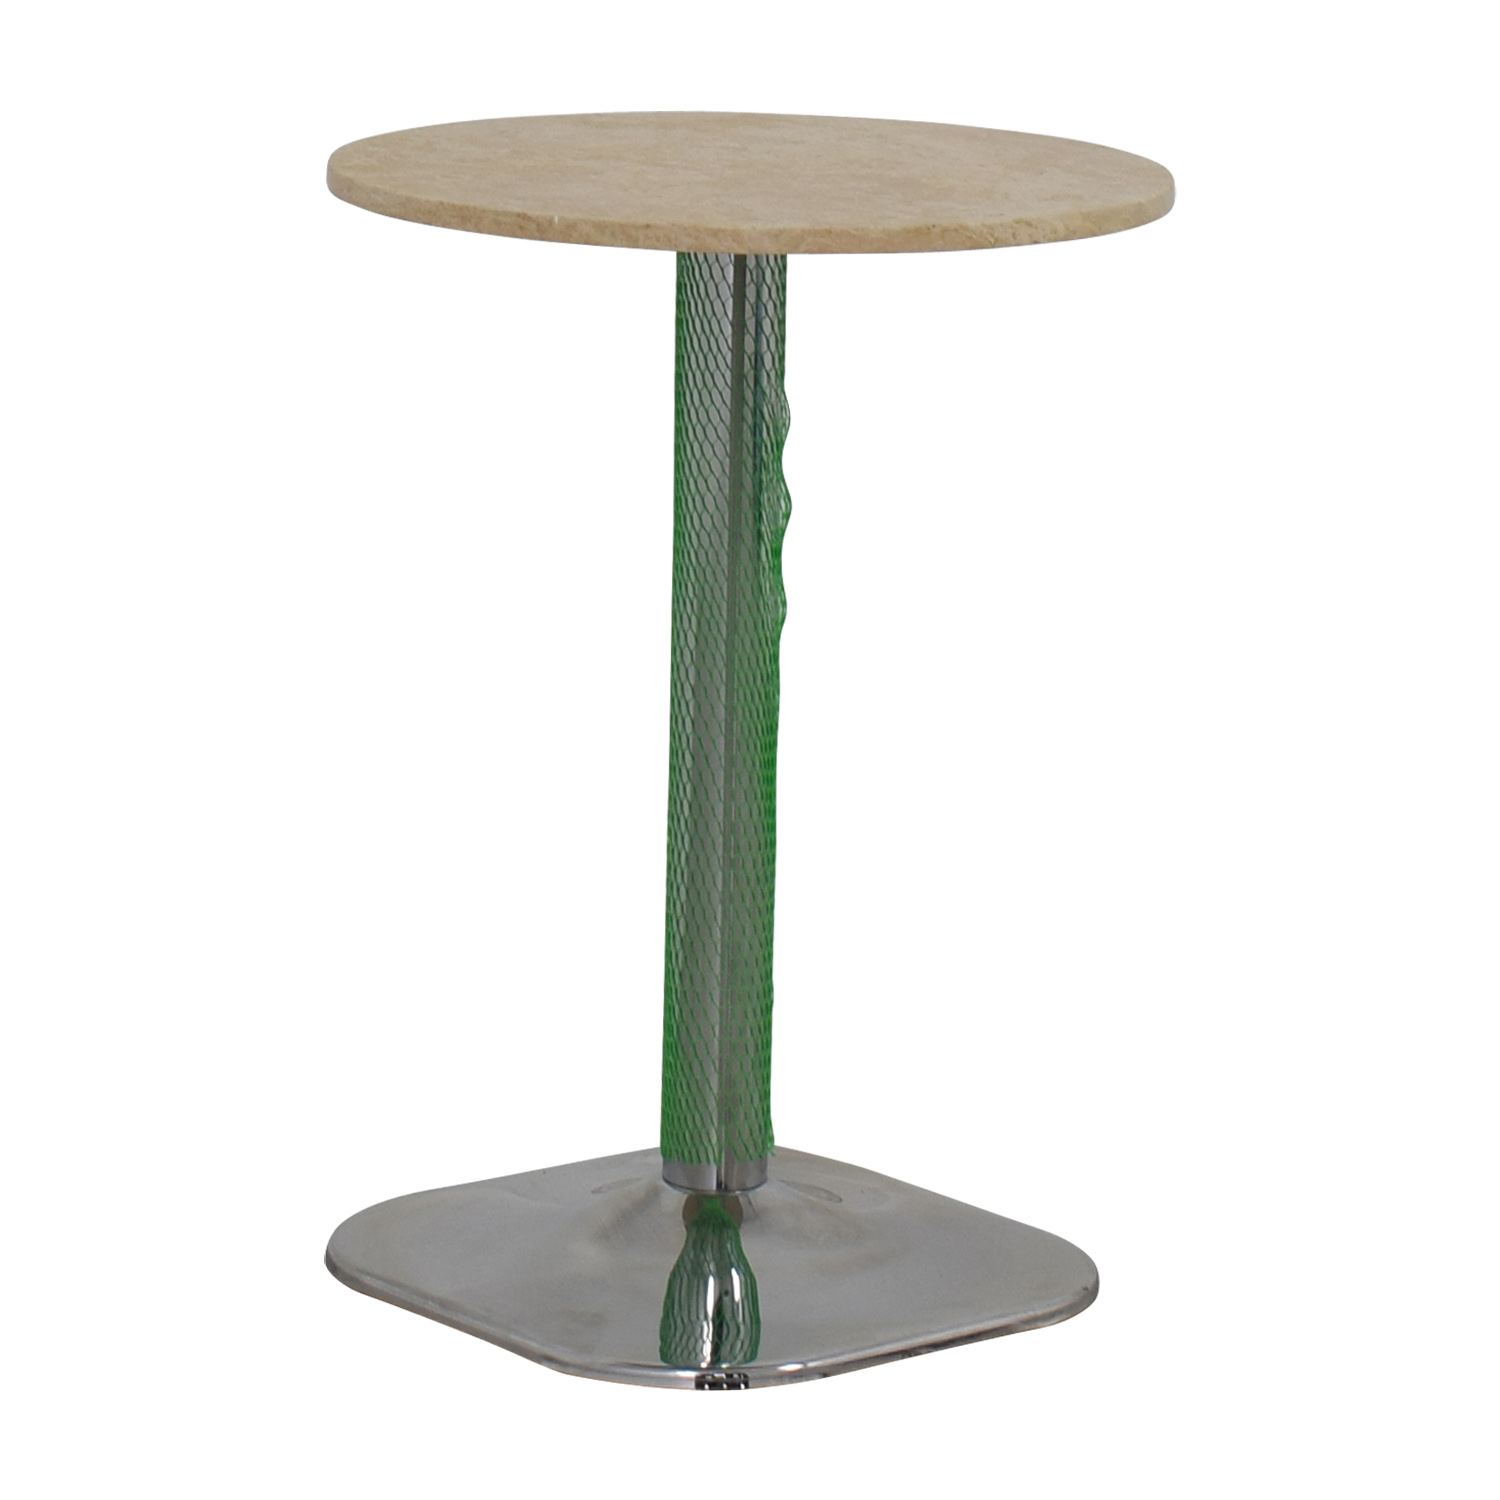 39% OFF Lotus Lotus Cream Marble with Green Pedestal Table Tables